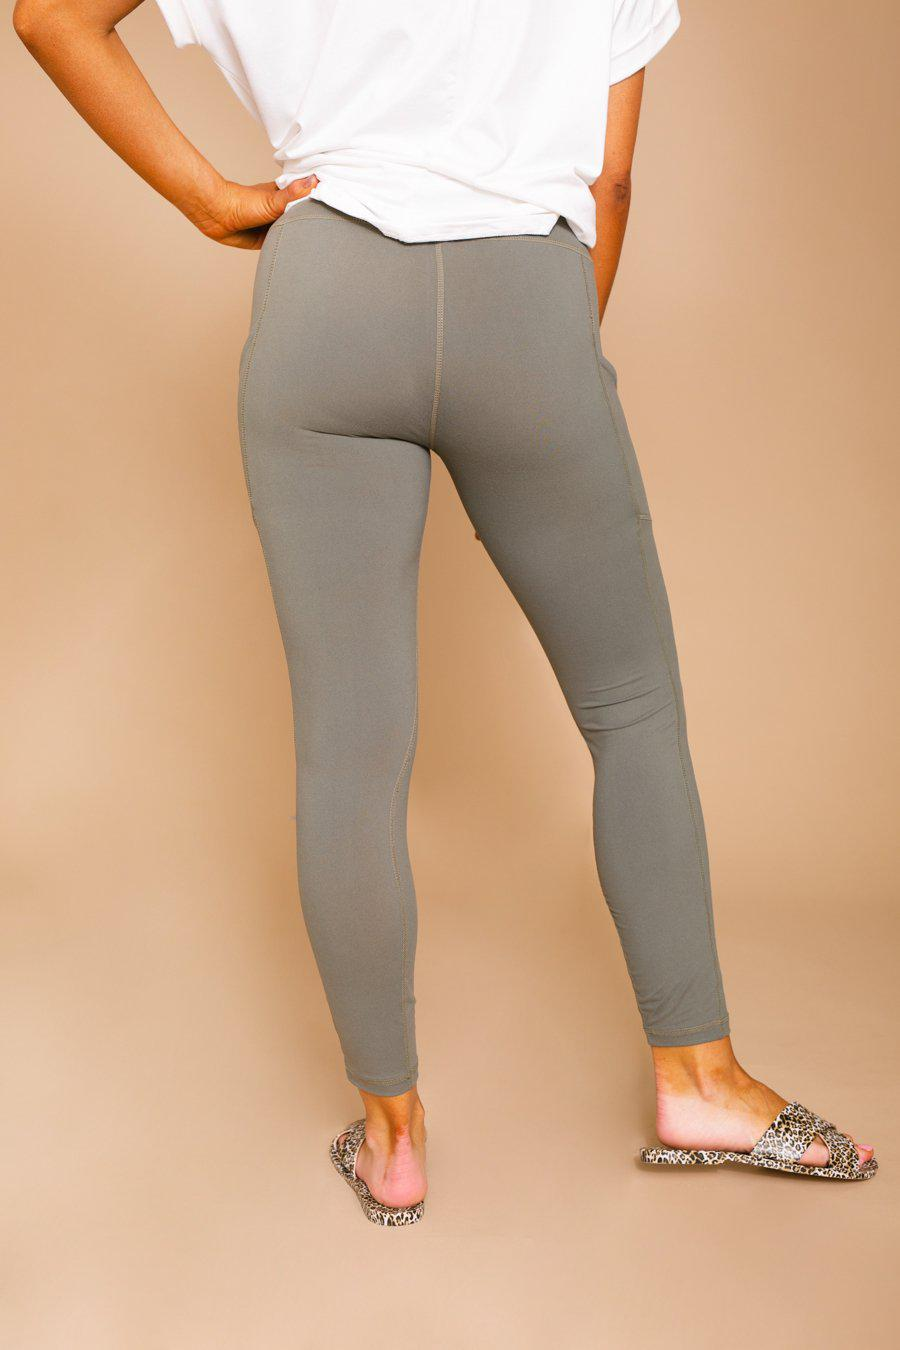 On The Run Leggings - Gameday Couture